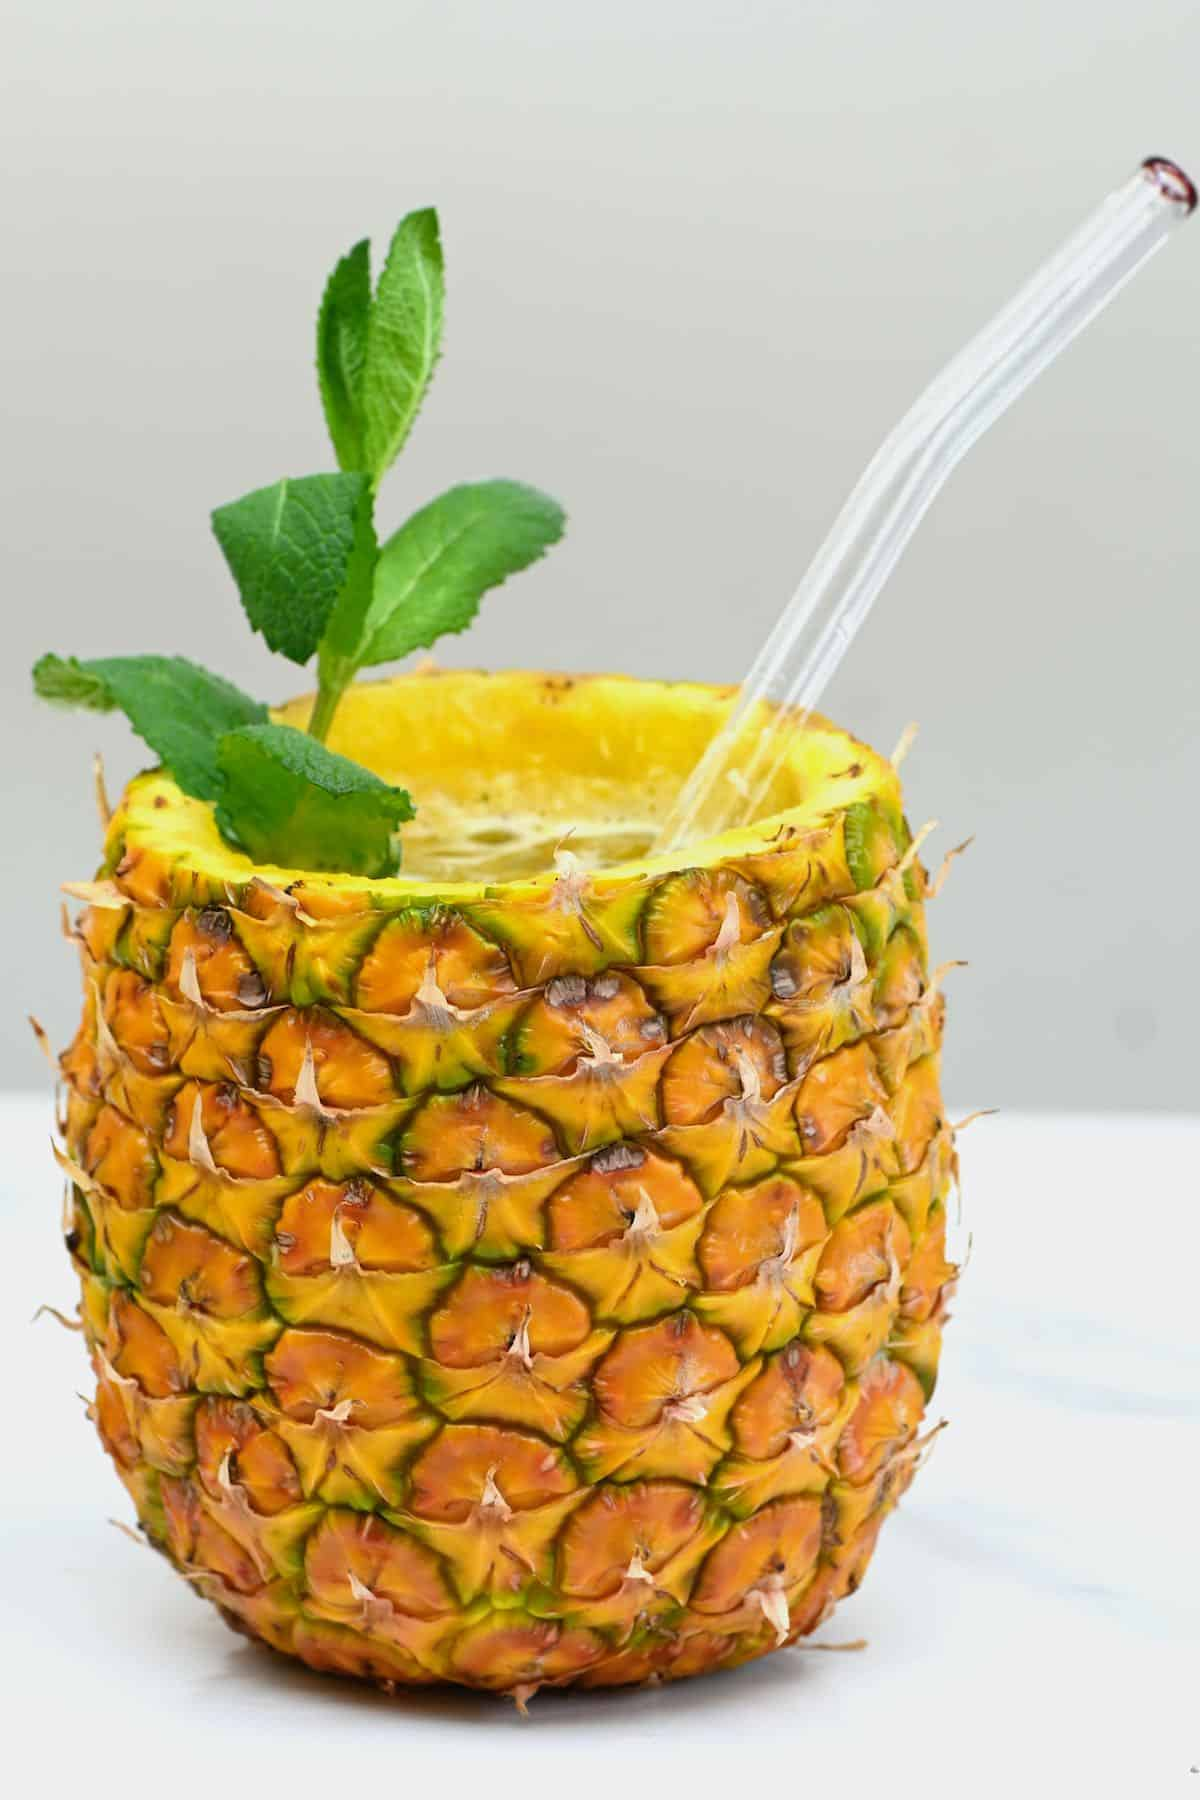 Pineapple limeade served in a pineapple